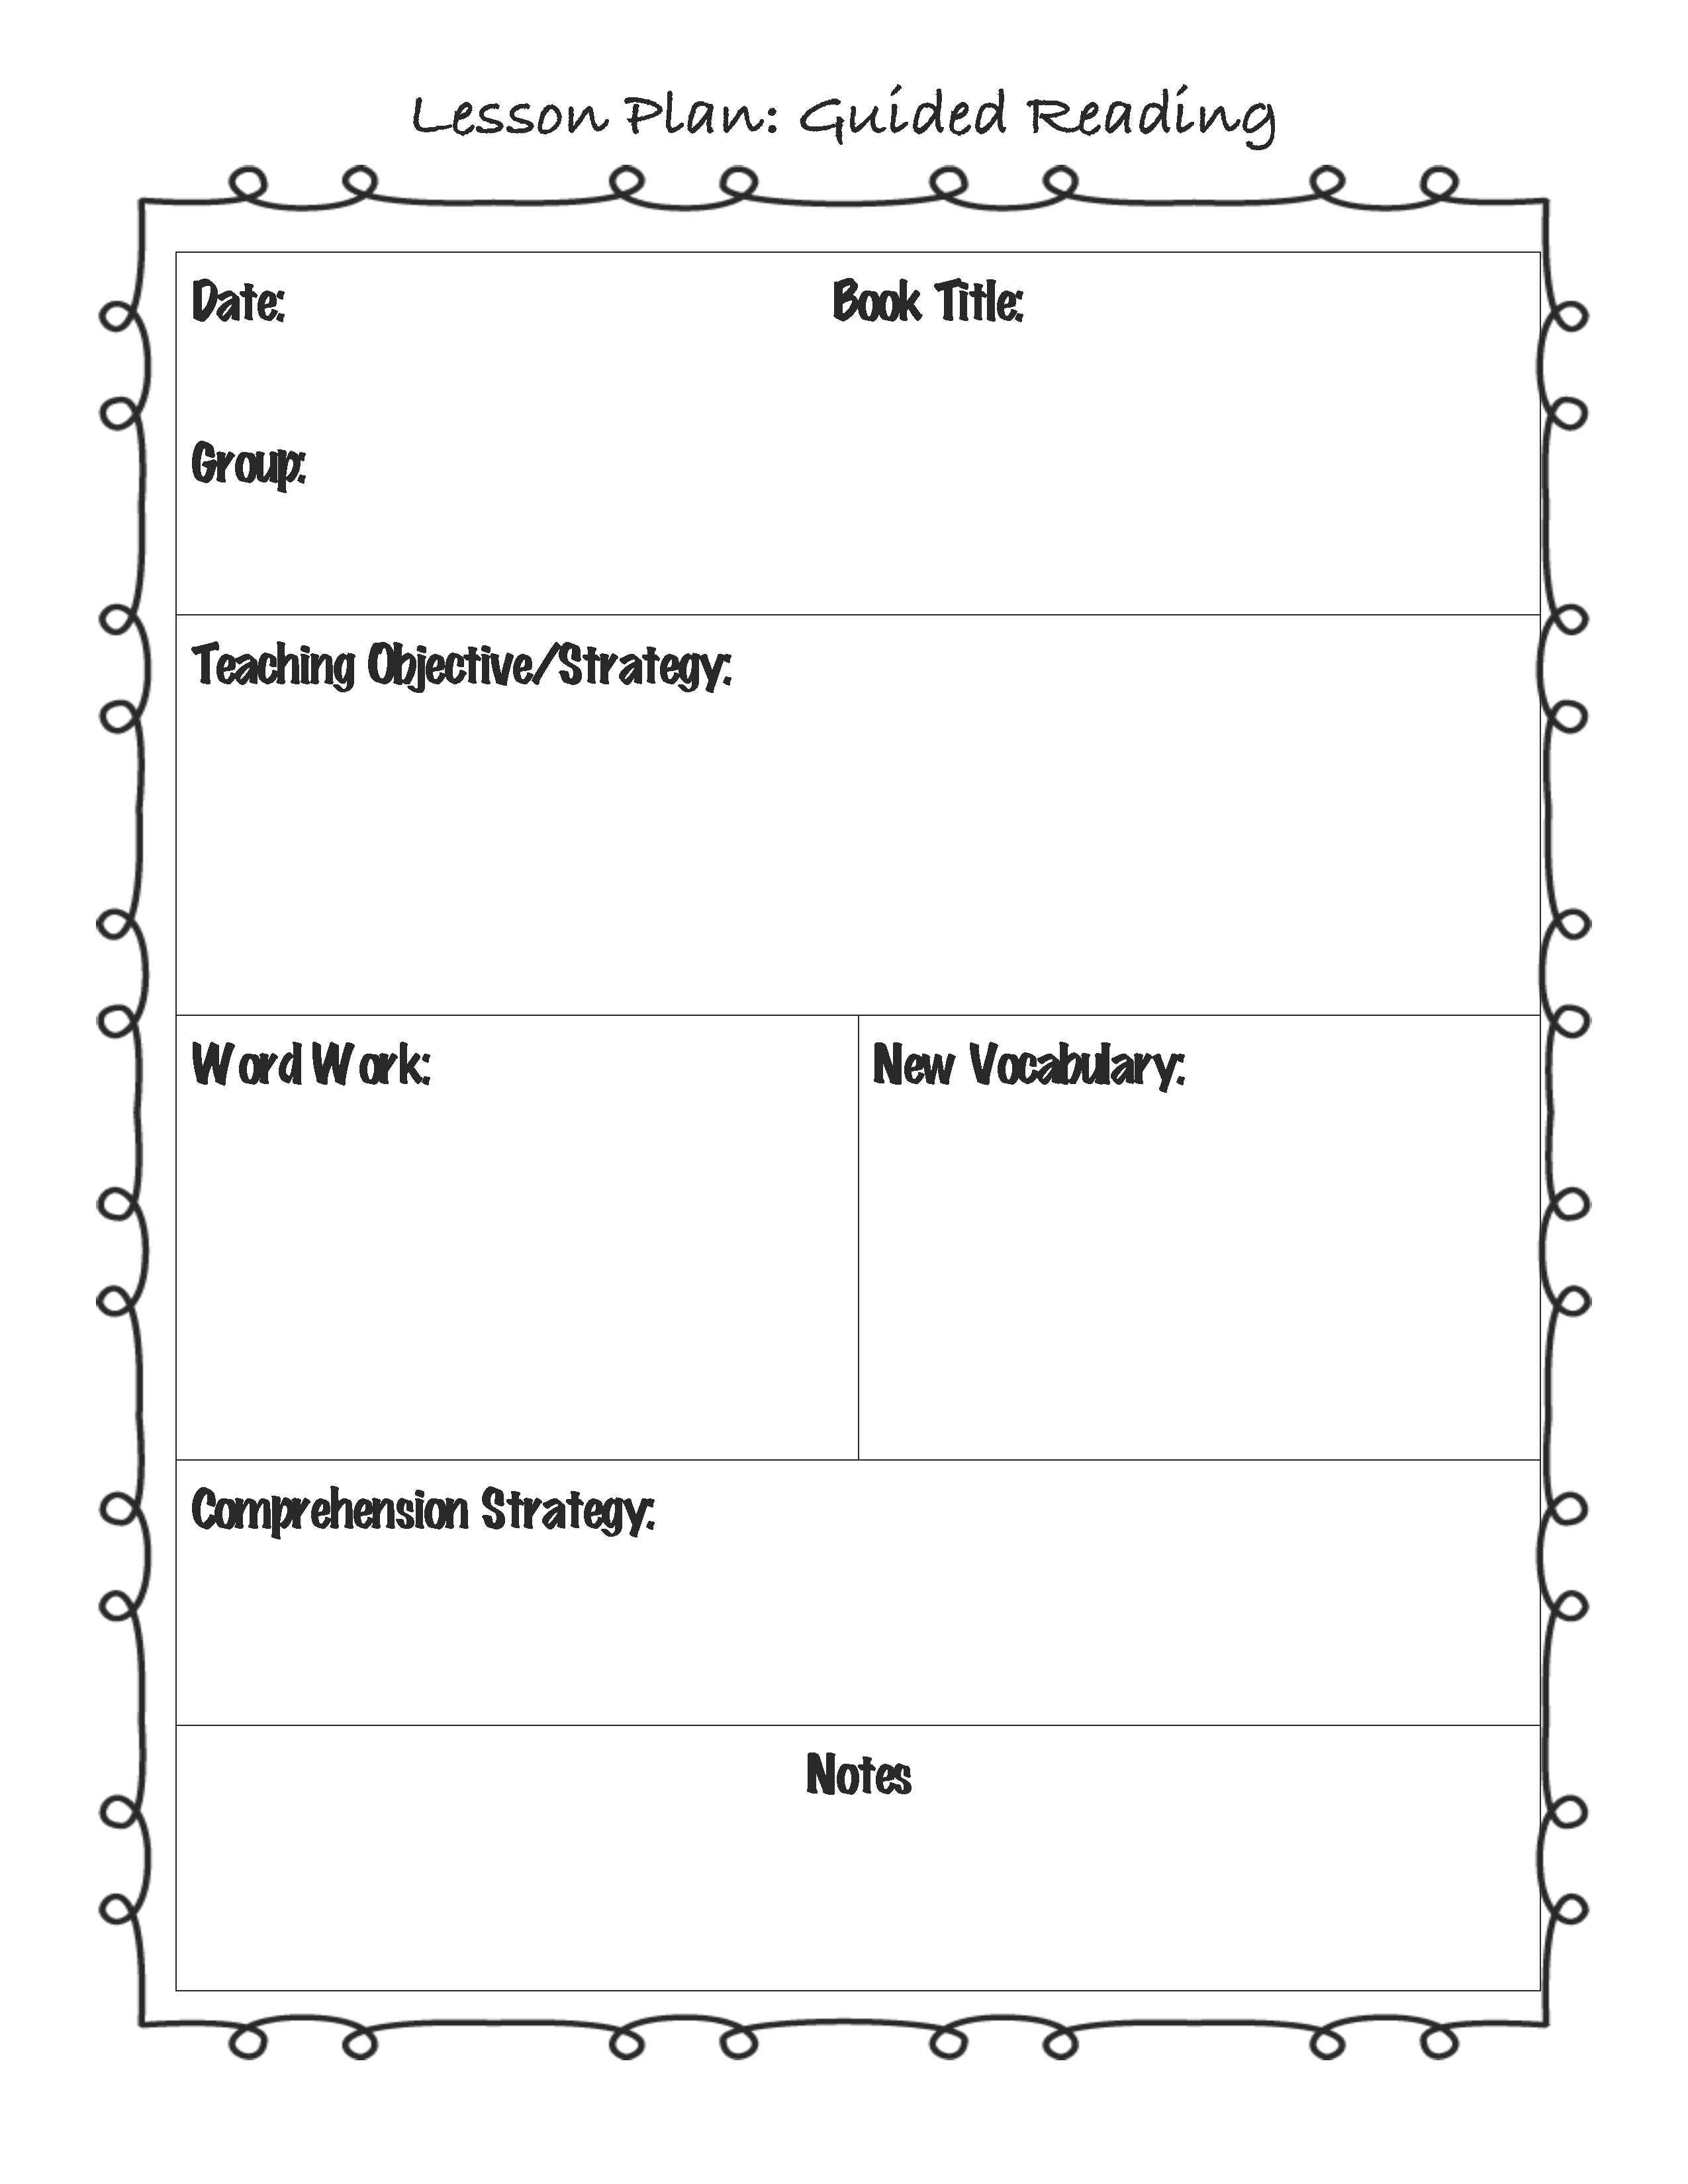 Guided Reading Lesson Plan Template For The Classroom - Free kindergarten lesson plan template